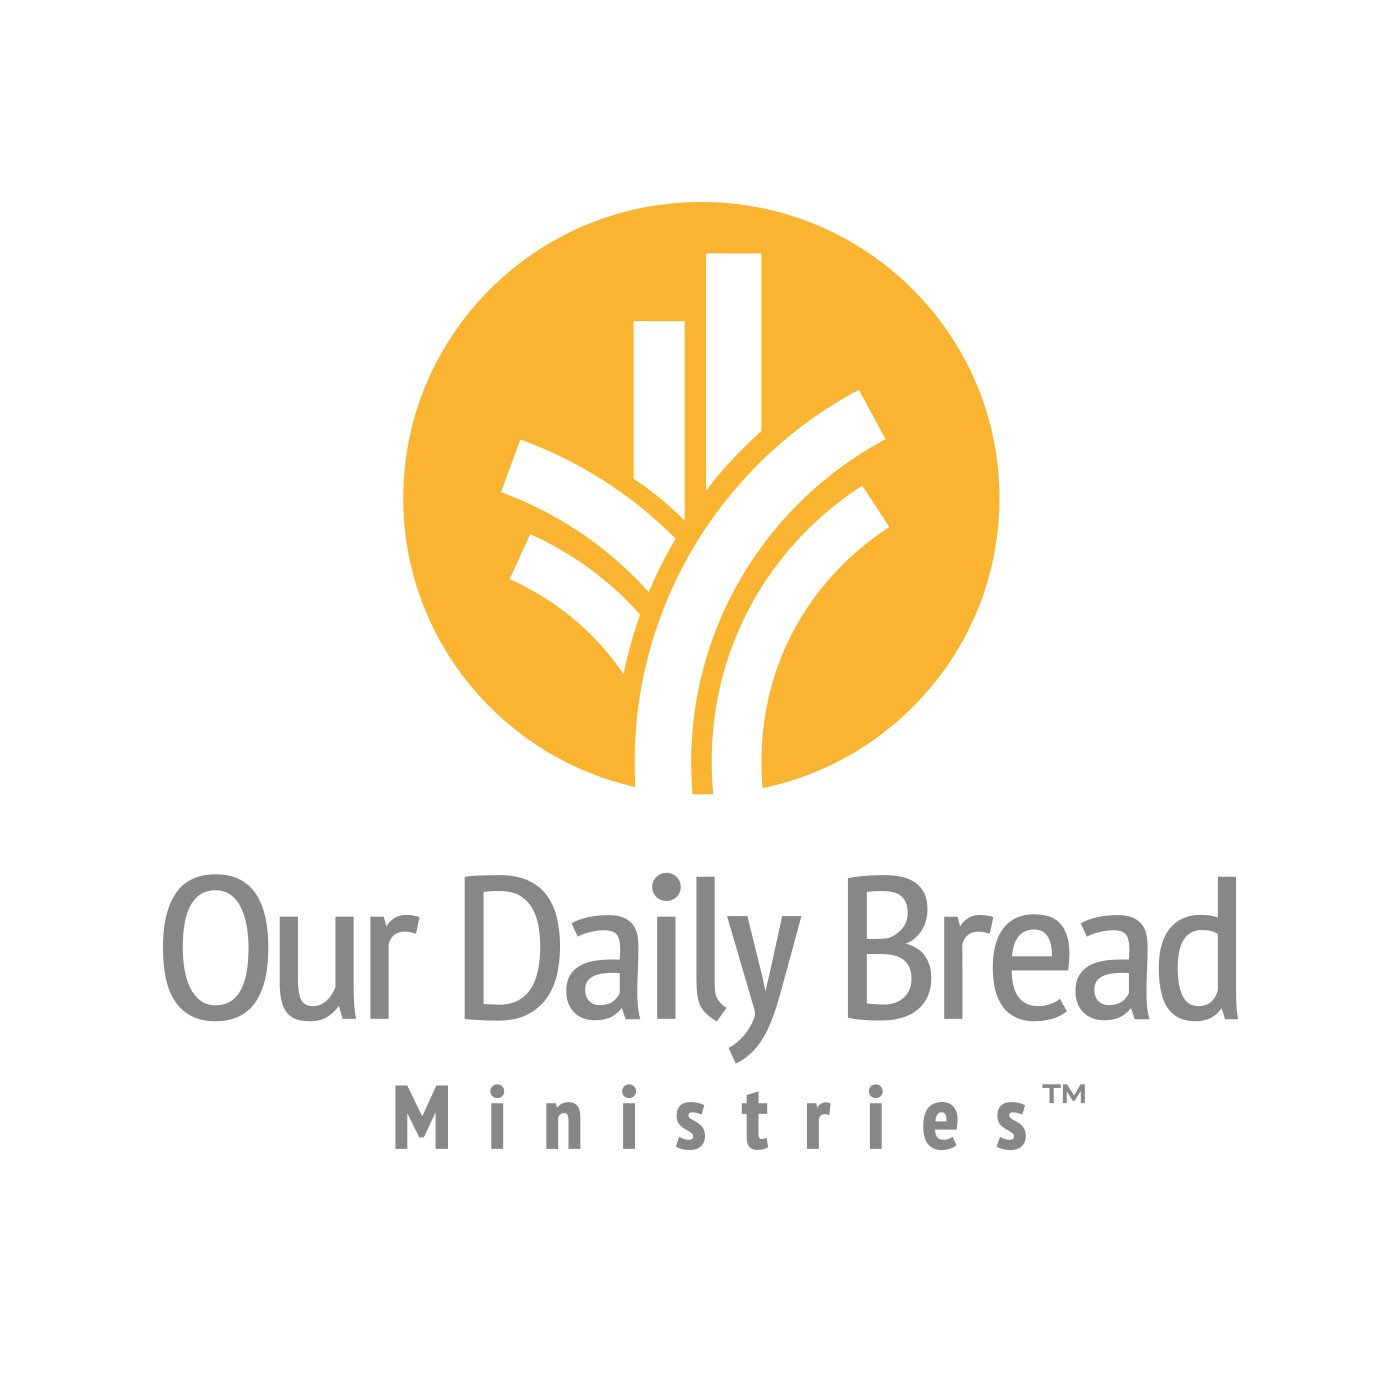 Our Daily Bread 29th December 2020, Our Daily Bread 29th December 2020 Devotional – Unseen Realities, Latest Nigeria News, Daily Devotionals & Celebrity Gossips - Chidispalace